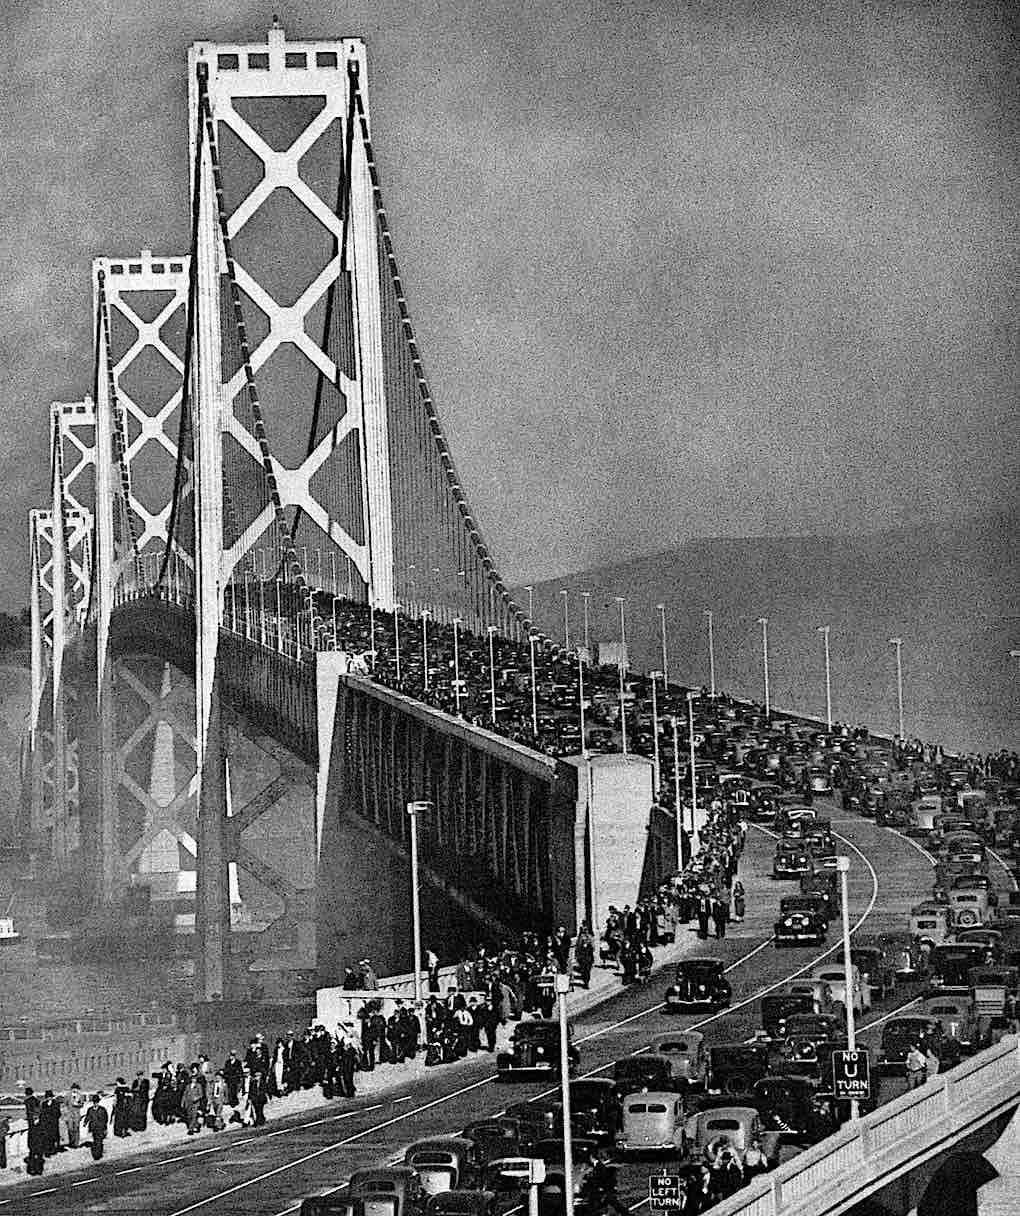 opening day on the 1936 San Francisco Oakland Bay Bridge, a photograph